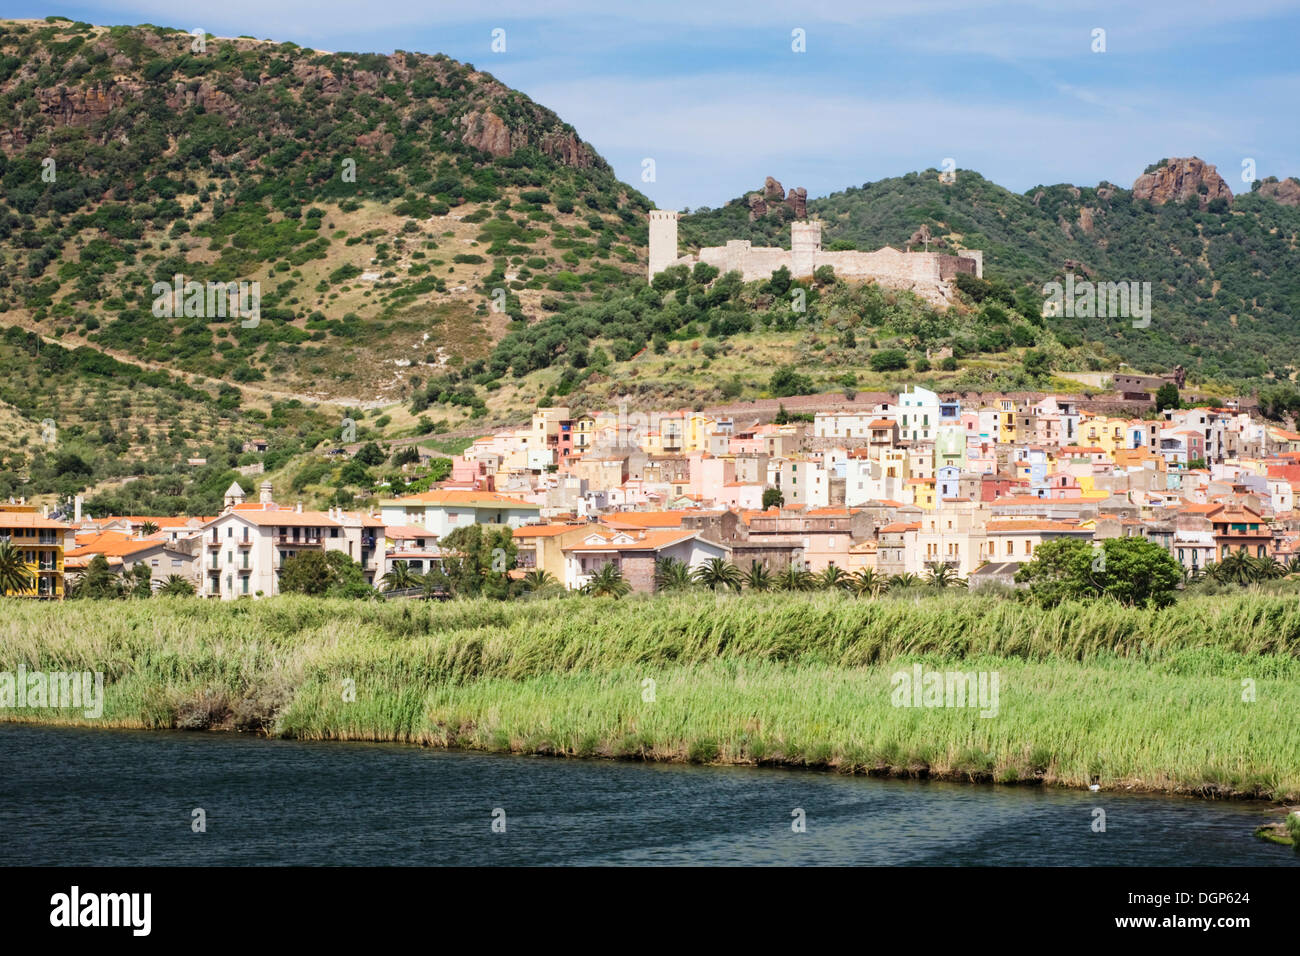 Bosa amid fertile fields in front of a Genoese fort, Oristano, Sardinia, Italy, Europe - Stock Image